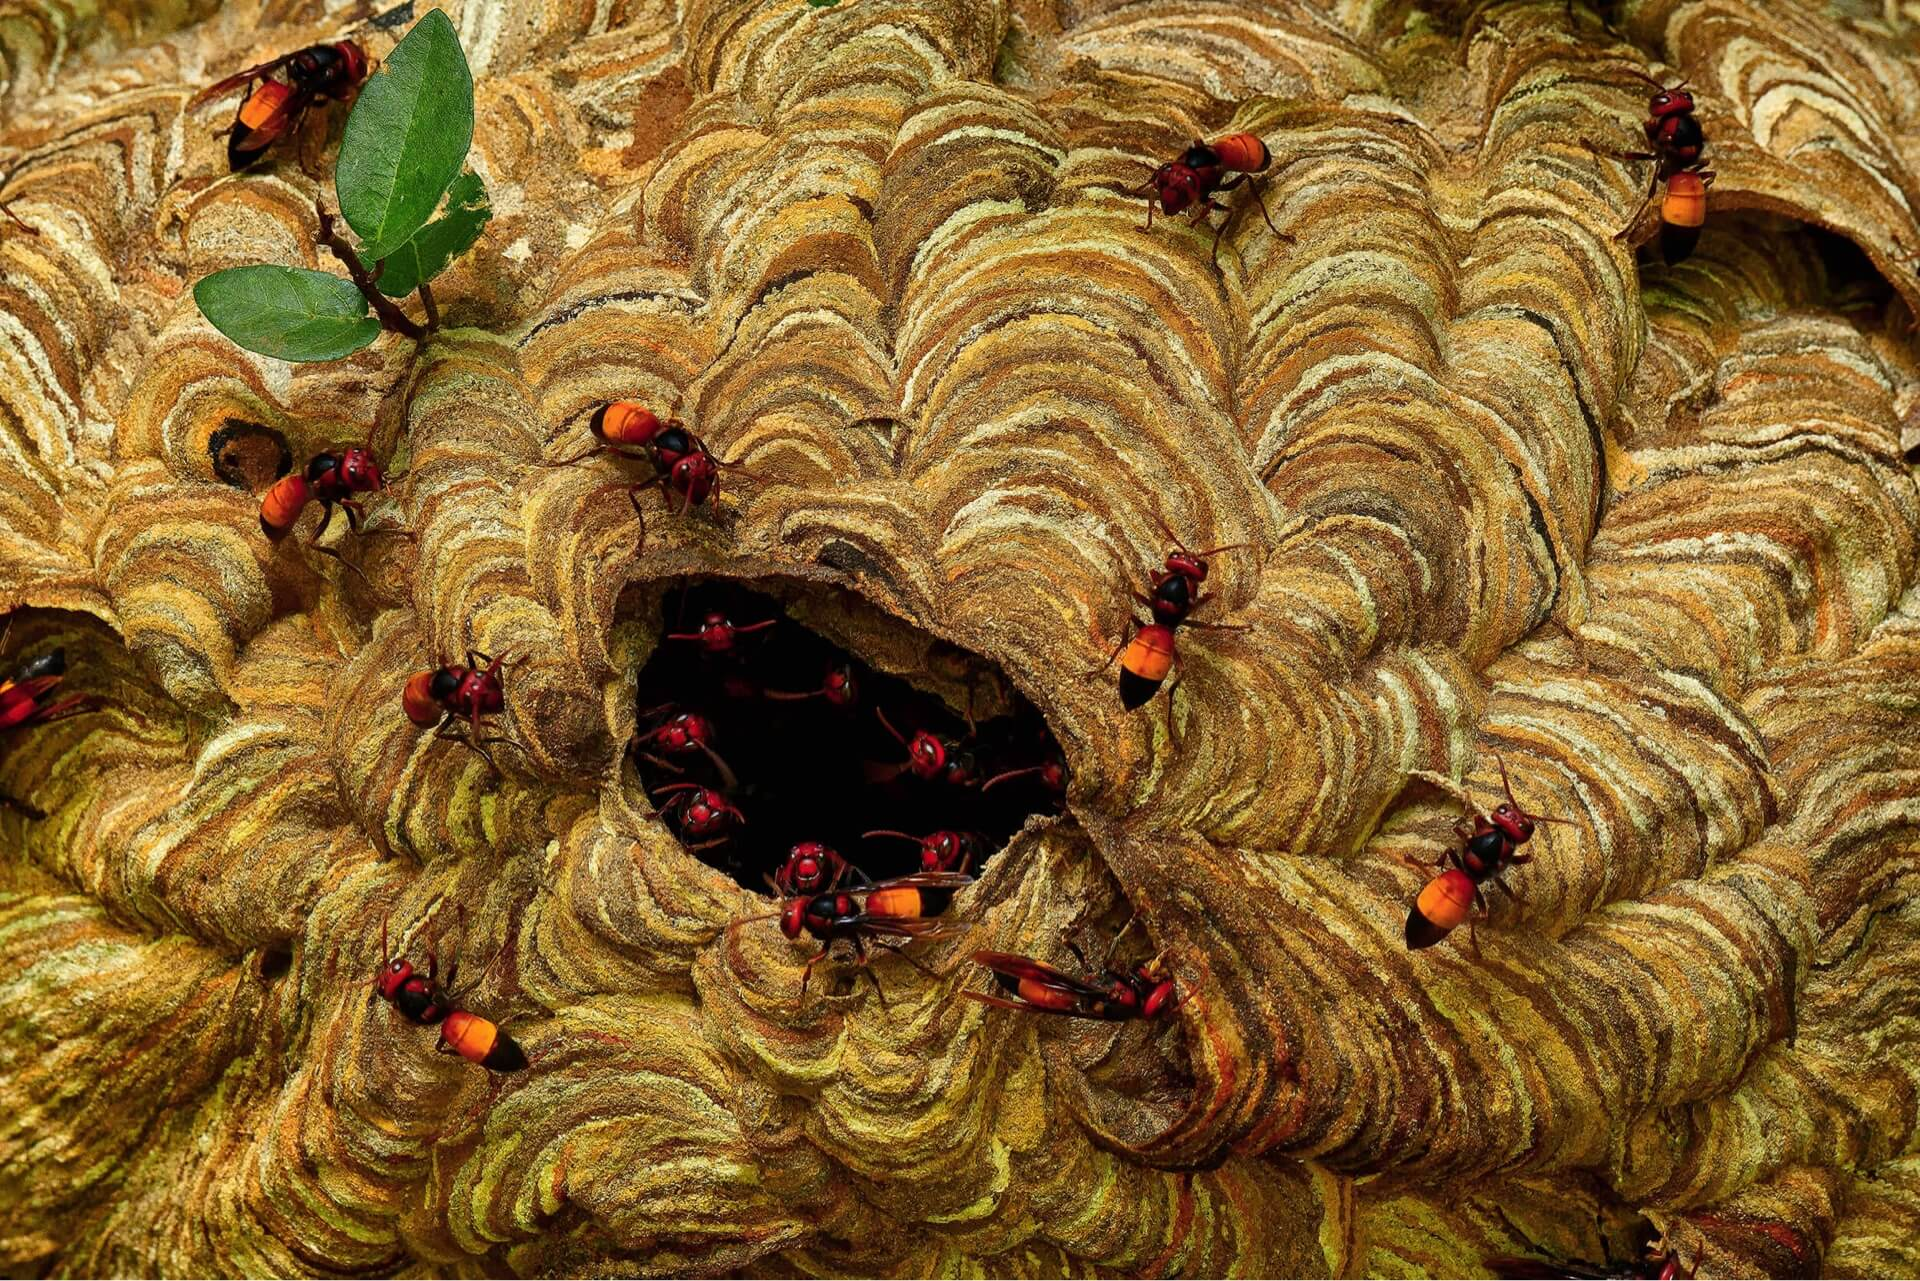 This large colony of lesser banded hornets was photographed by KALLOL MUKHERJEE in his garden in Singur, West Bengal. He wrote about them,